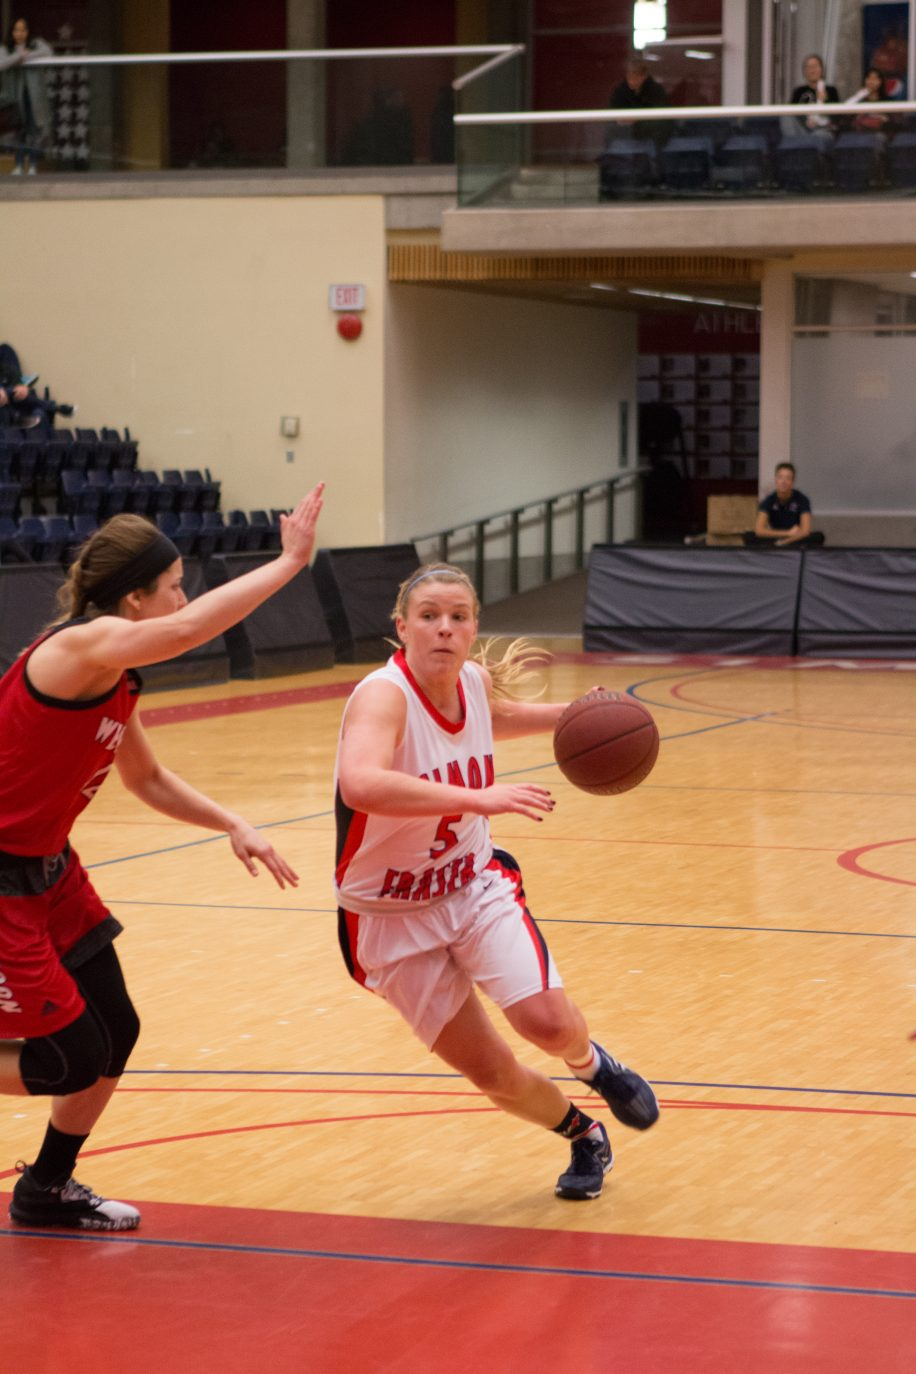 Ellen Kett, seen here in action earlier in the season, had 7 points, 8 assists, and 7 rebounds in 39 minutes.